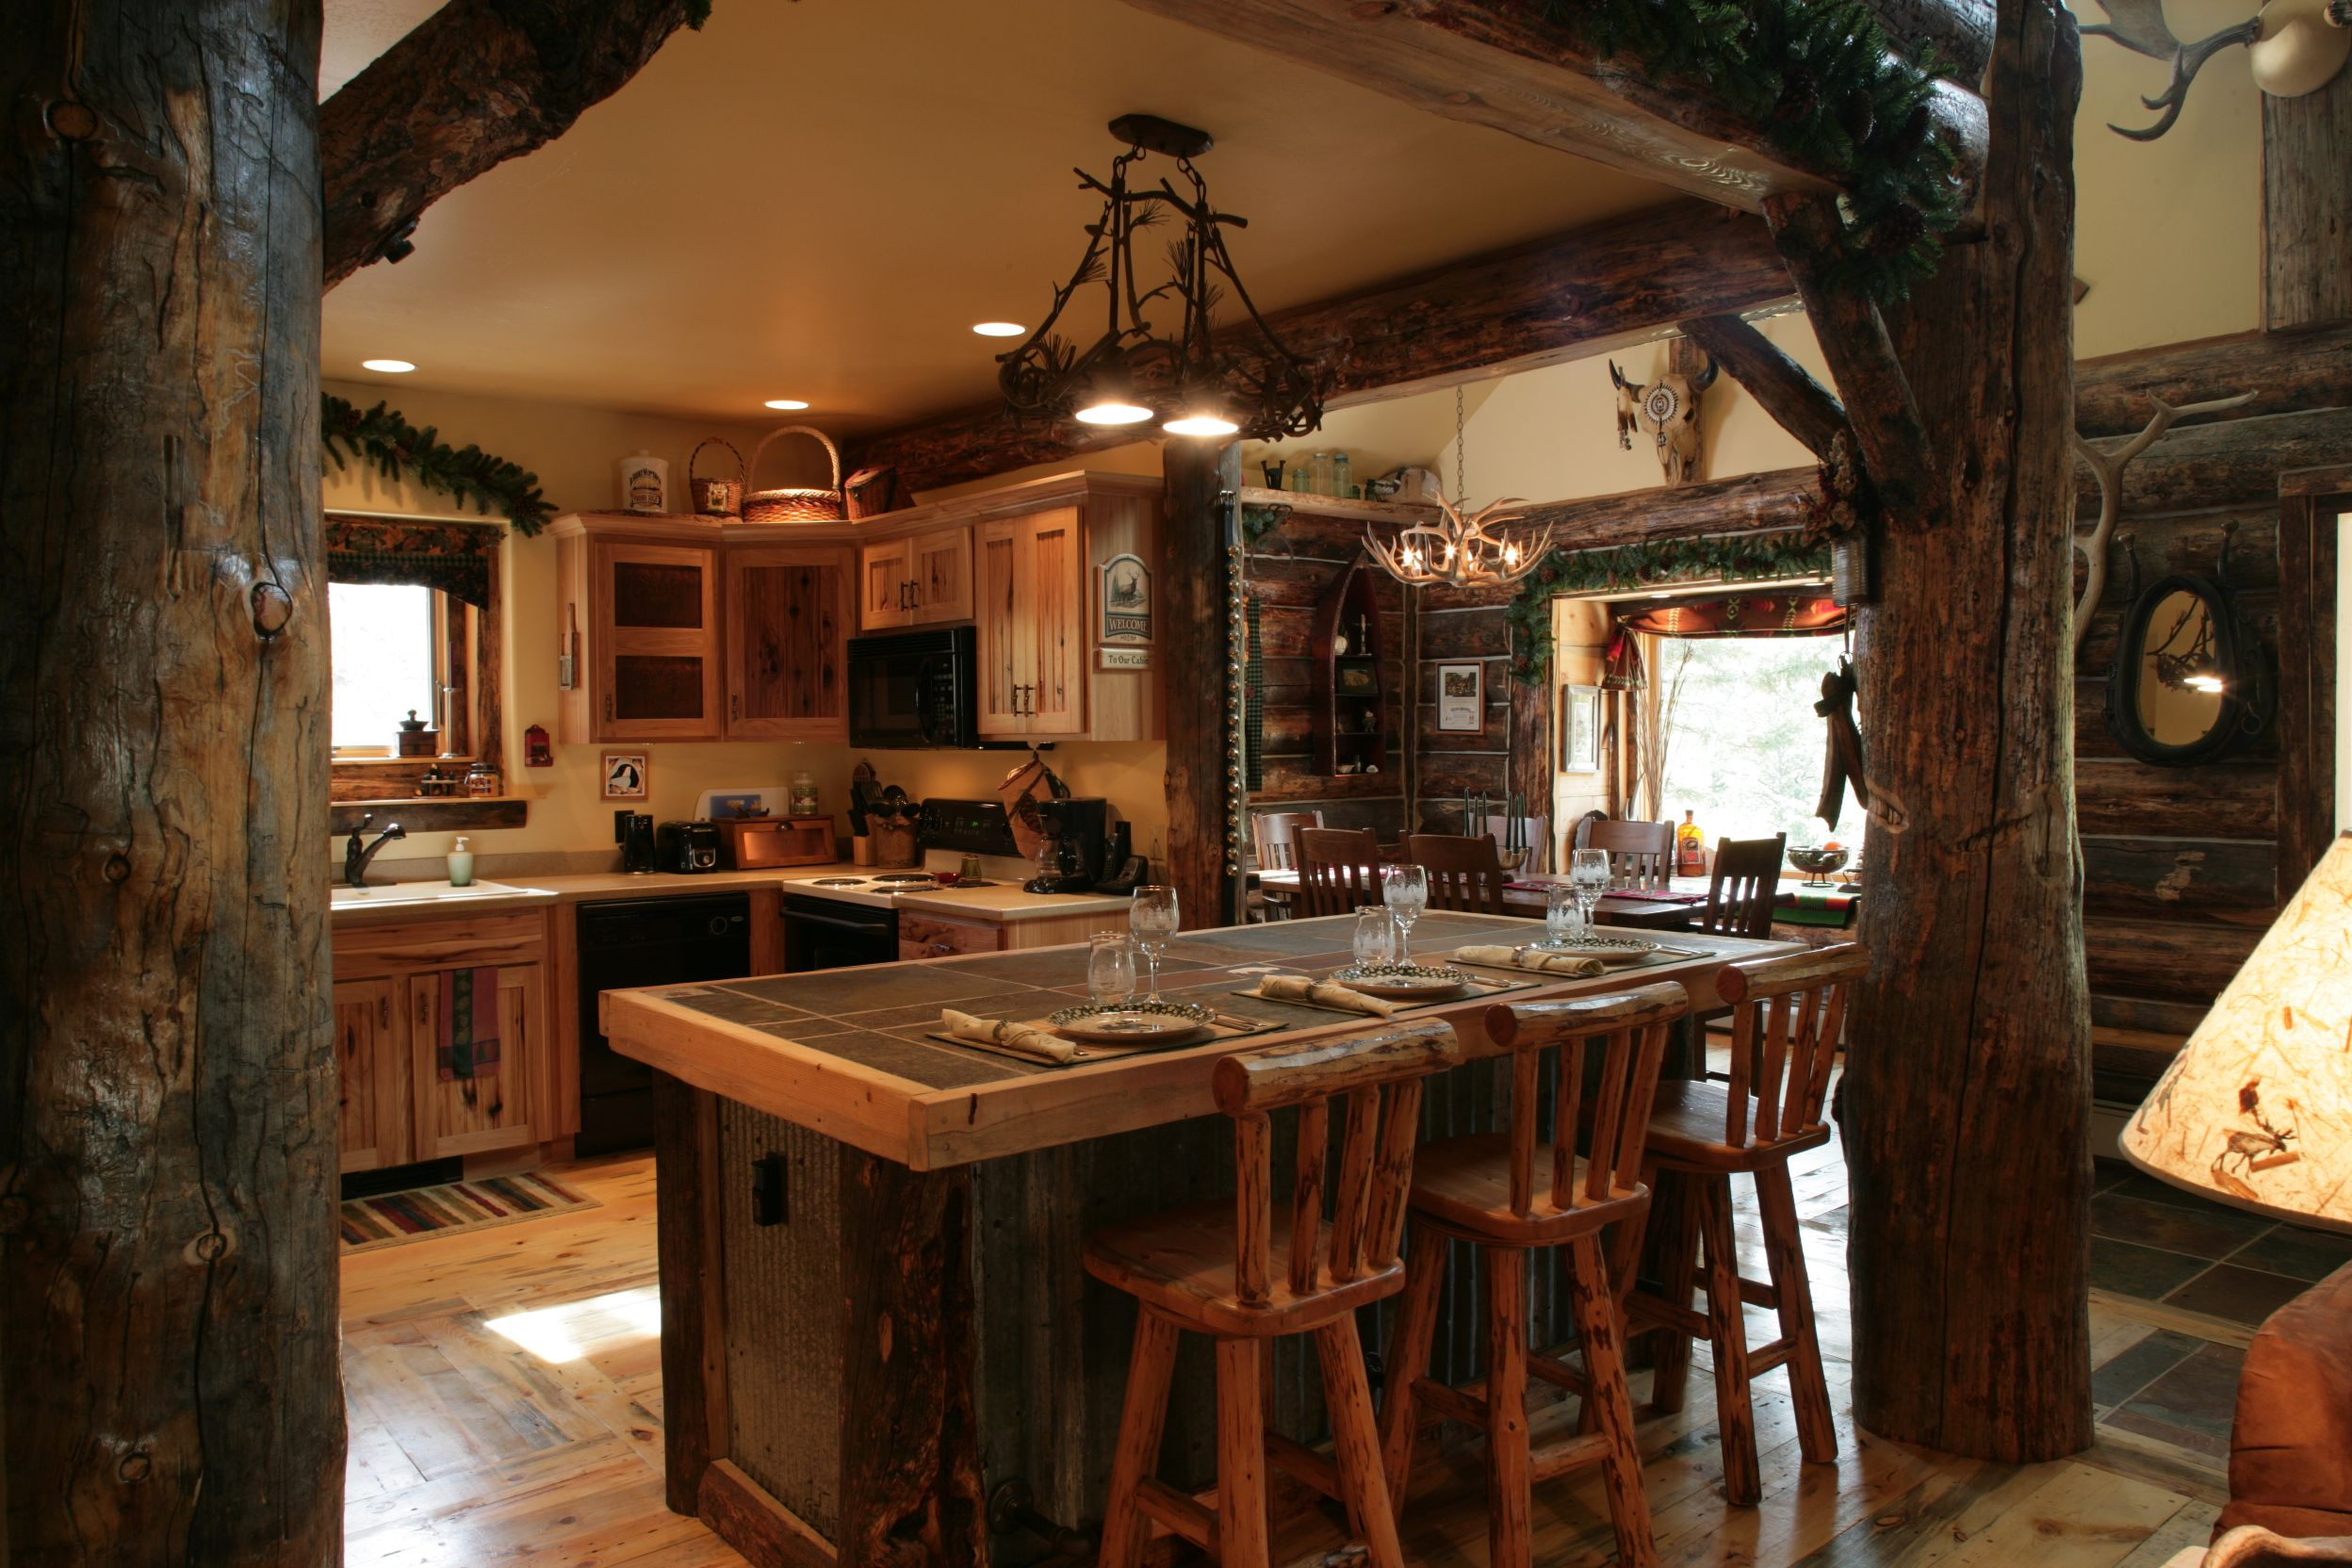 Cabin interior design Warm up Your Home With These Interior Designs Involving Wood